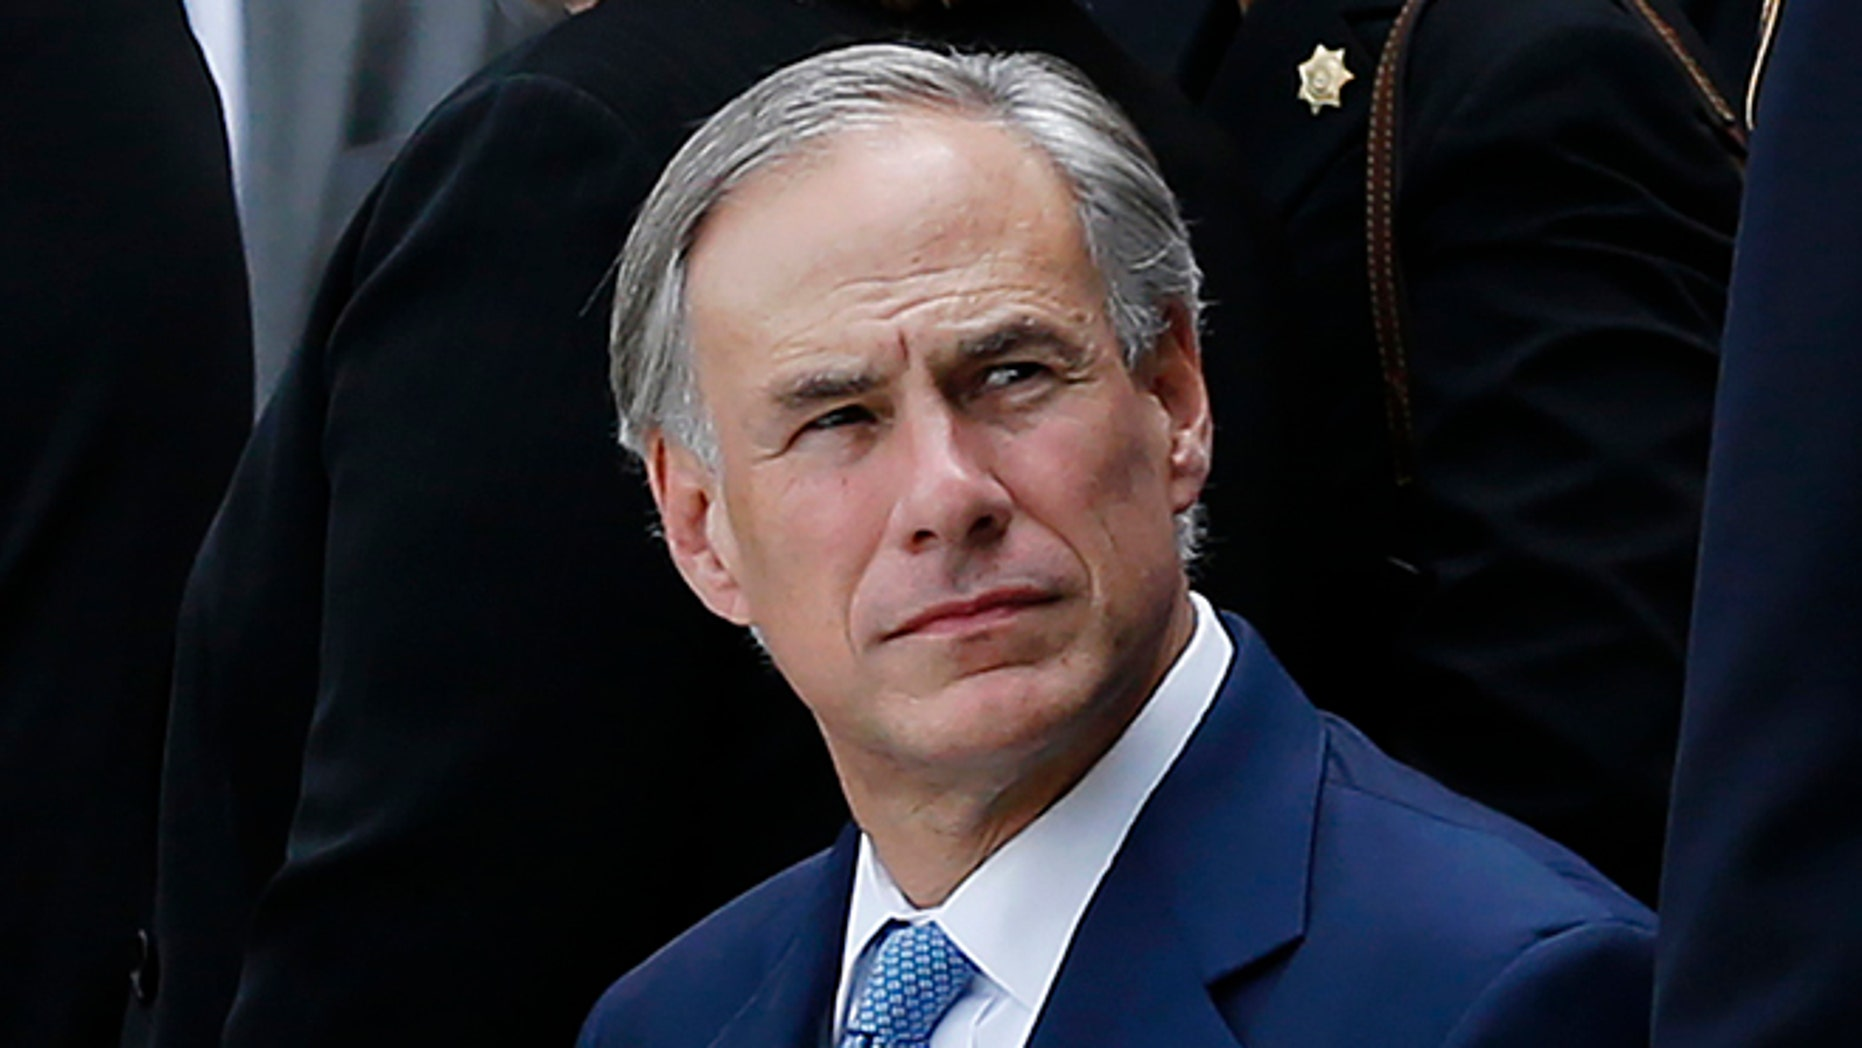 HOUSTON, TX - SEPTEMBER 4: Texas Gov. Greg Abbott attends the funeral for Harris County Sheriff Deputy Darren Goforth at Second Baptist Church on September 4, 2015 in Houston, Texas. Deputy Darren Goforth was fatally shot at a gas station last week. (Photo by Aaron M. Sprecher/Getty Images)